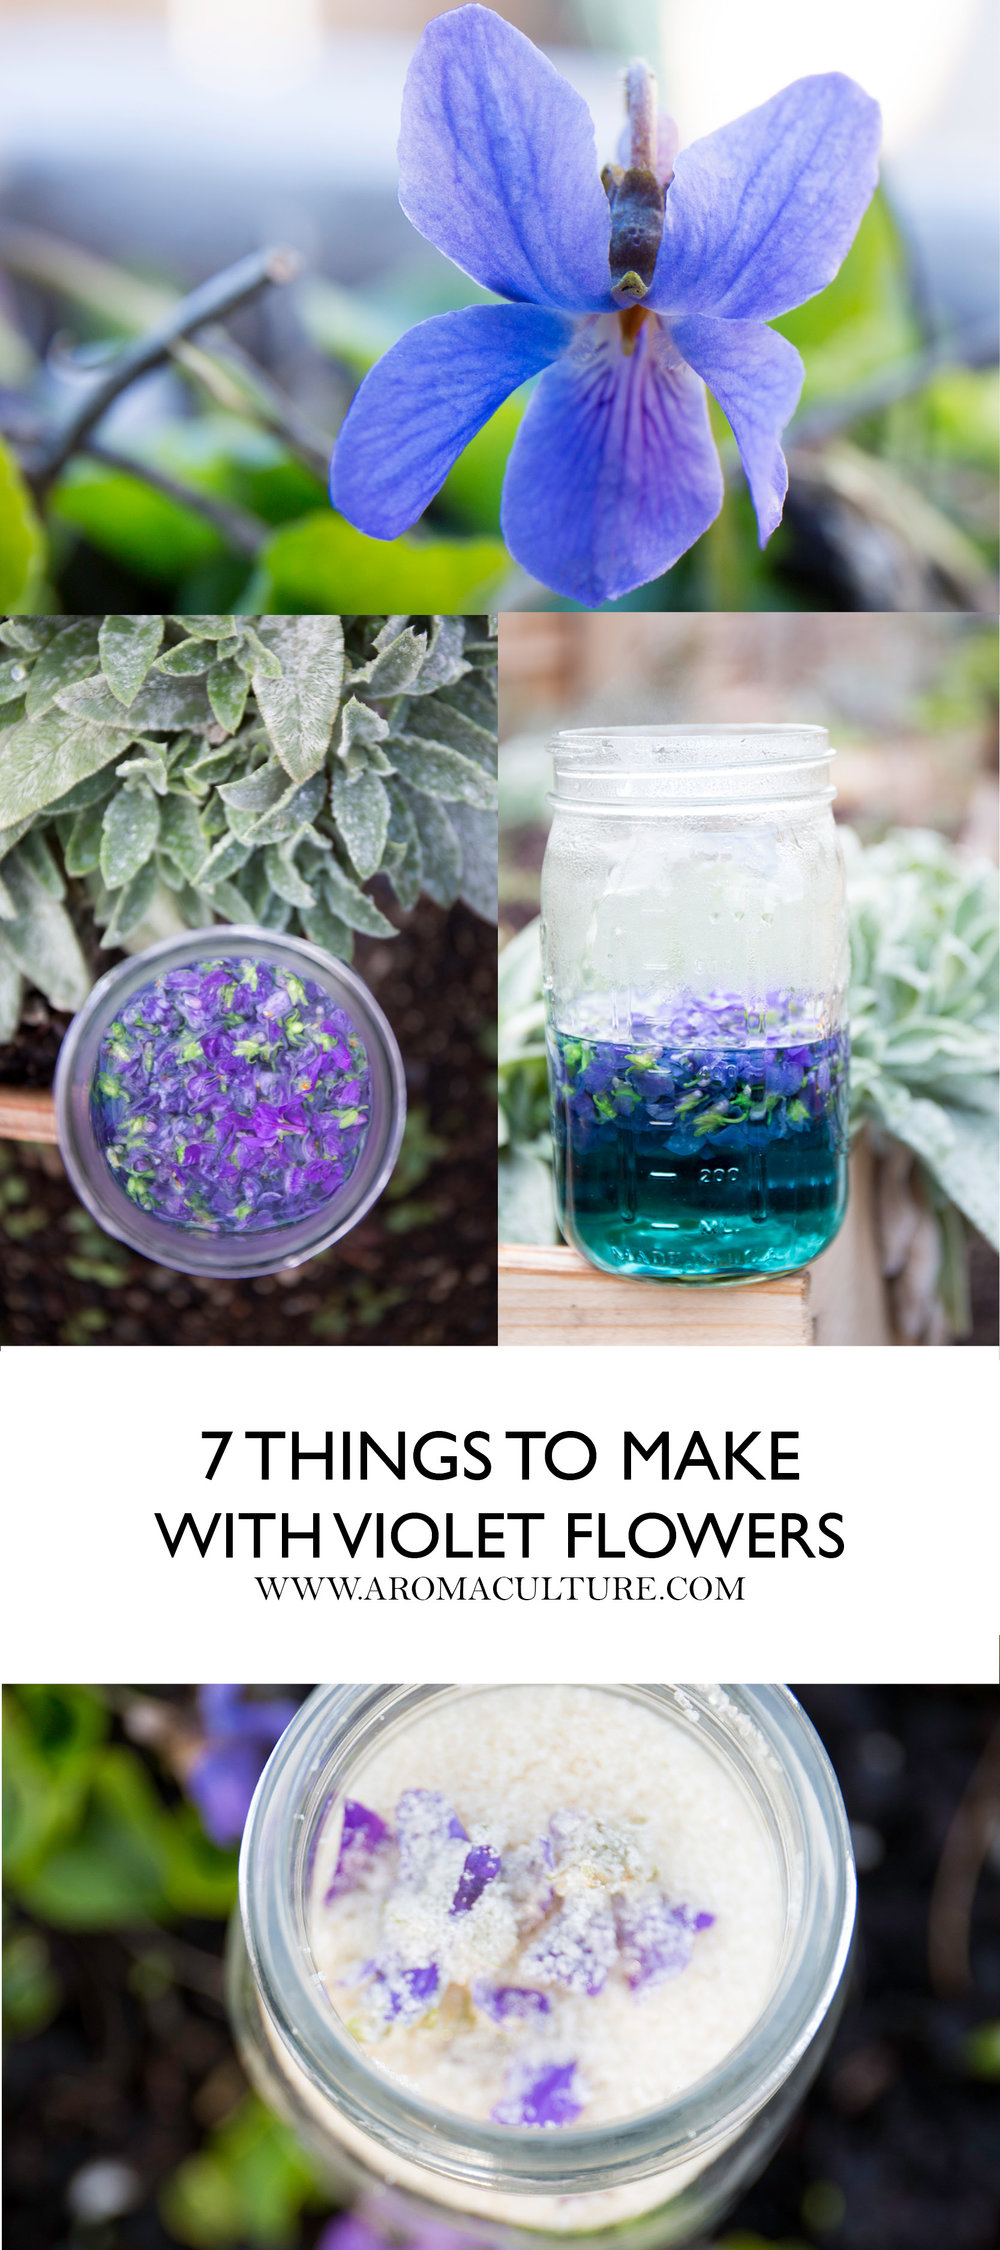 7 THINGS TO MAKE WITH VIOLETS AROMACULTURE.jpg